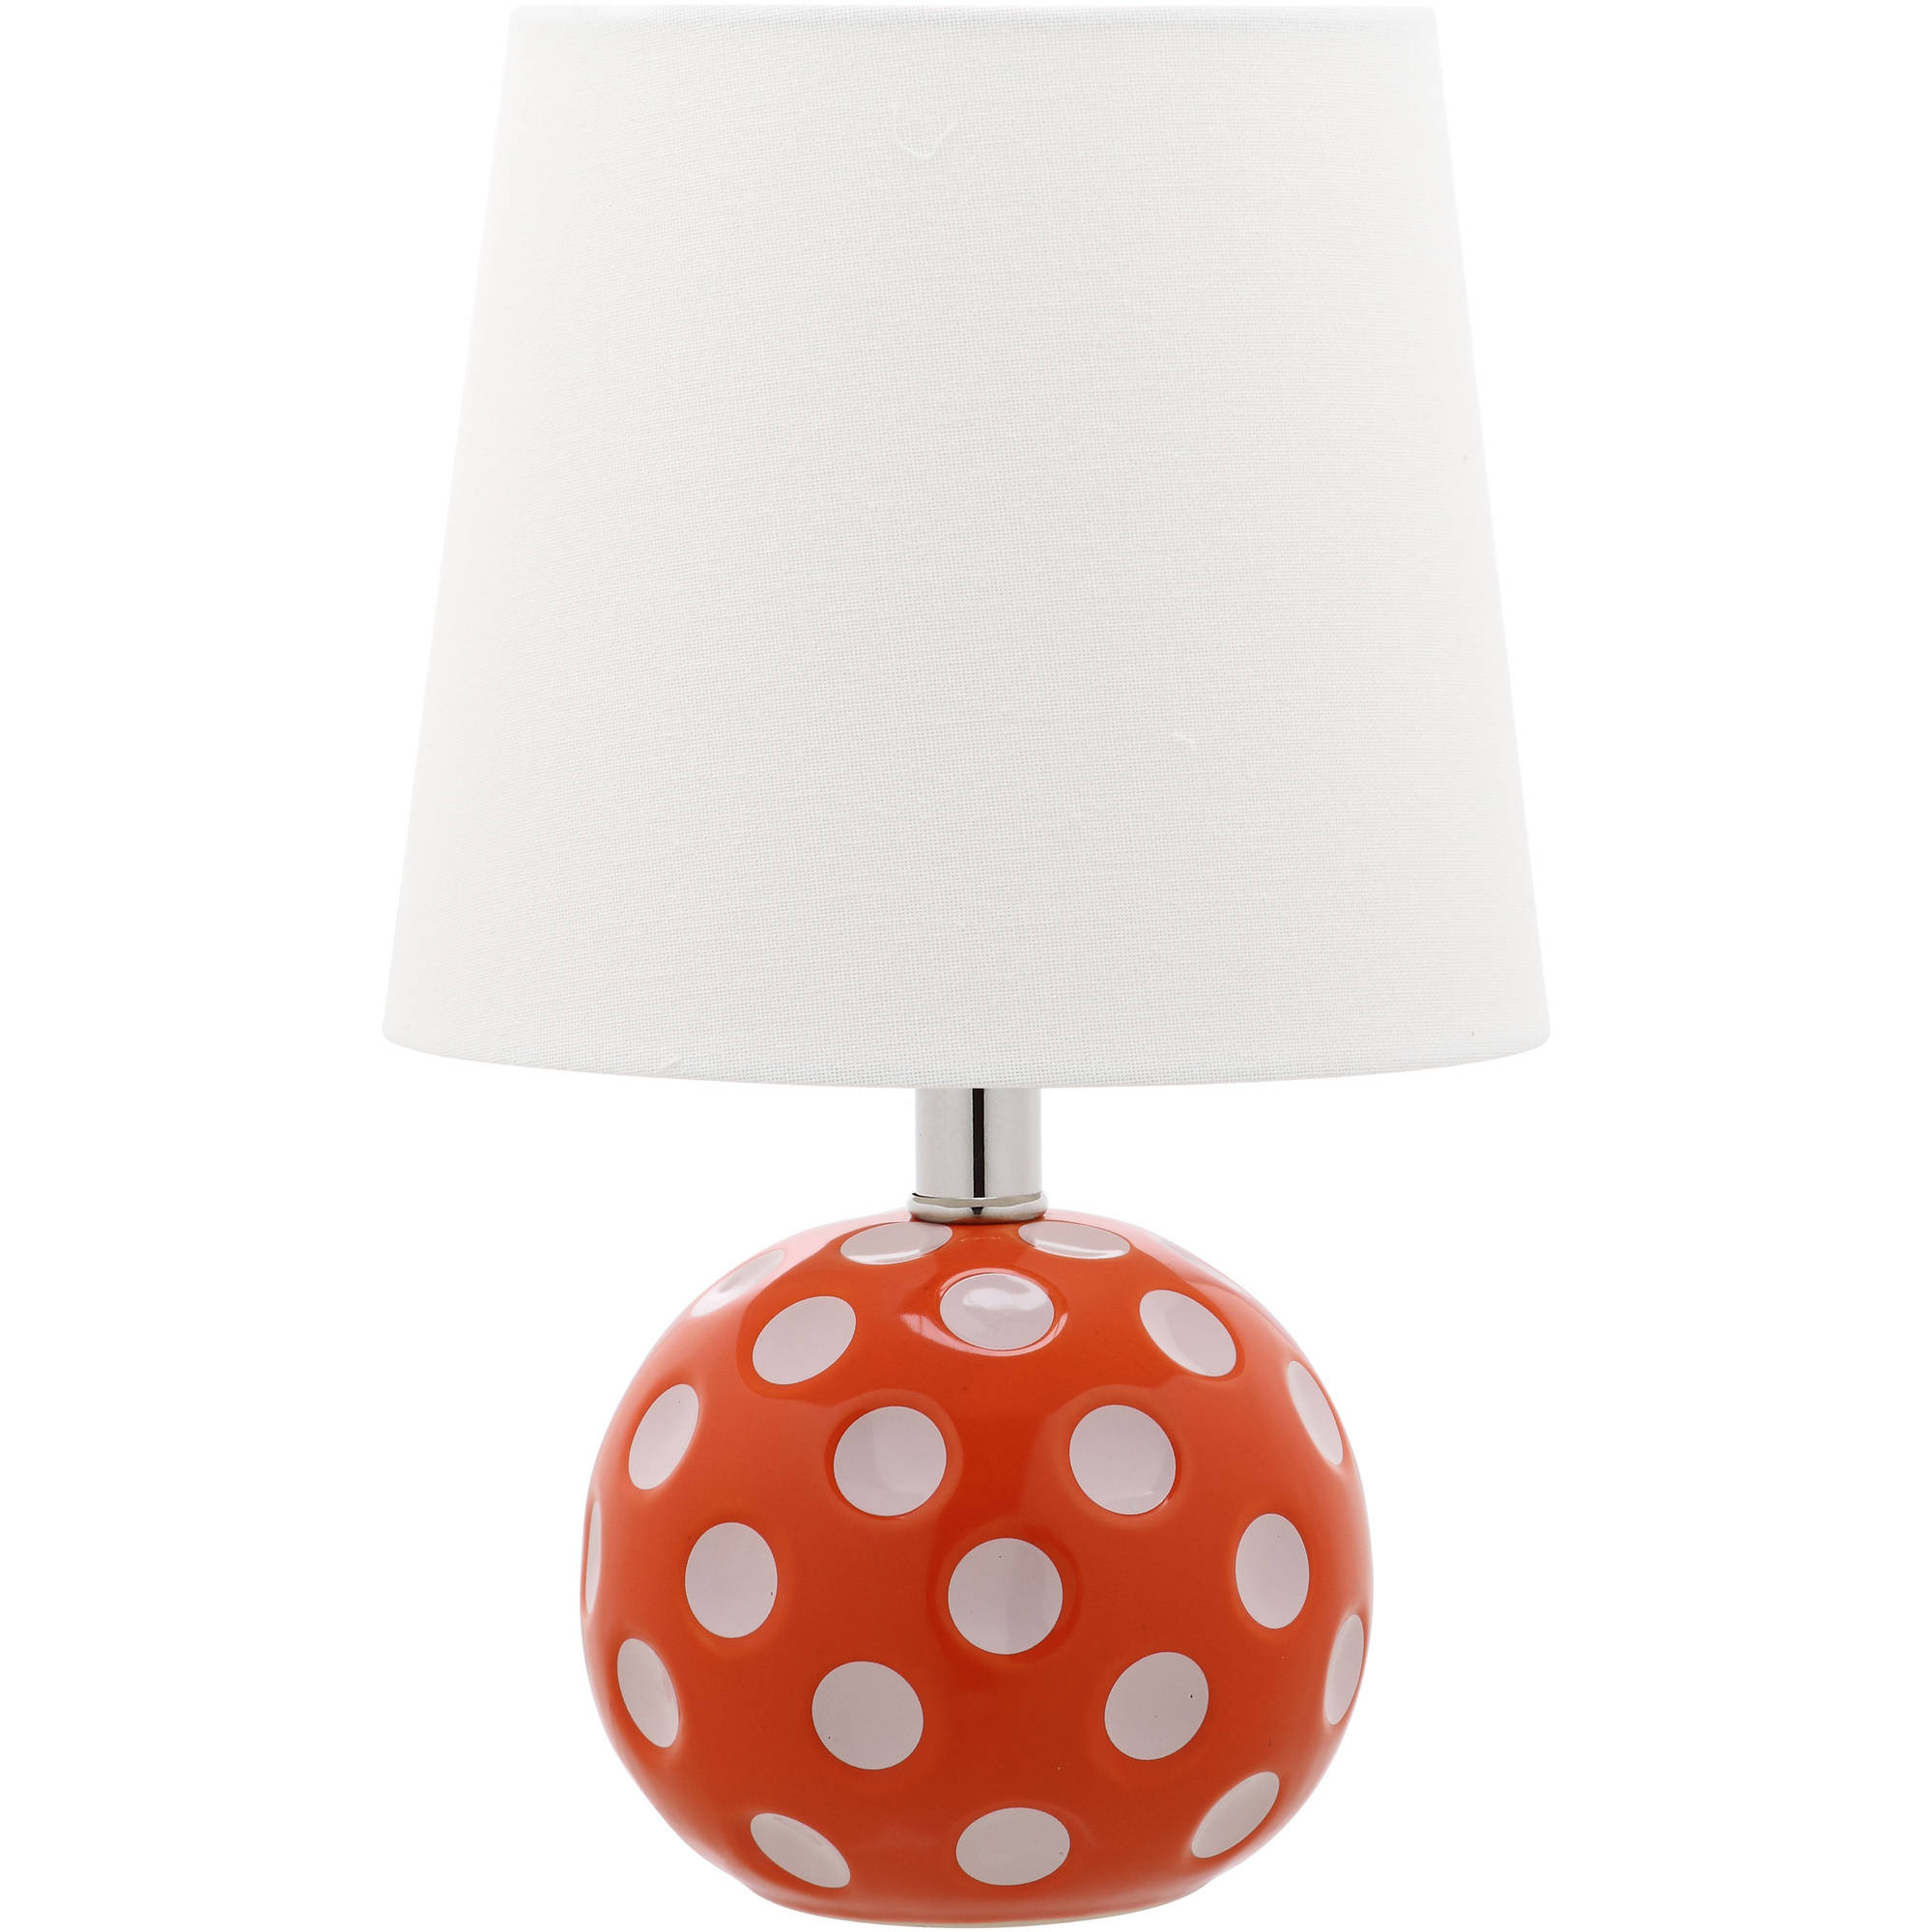 Safavieh Kids Polka Dot Circle Mini Table Lamp with CFL Bulb, Multiple Colors by Safavieh